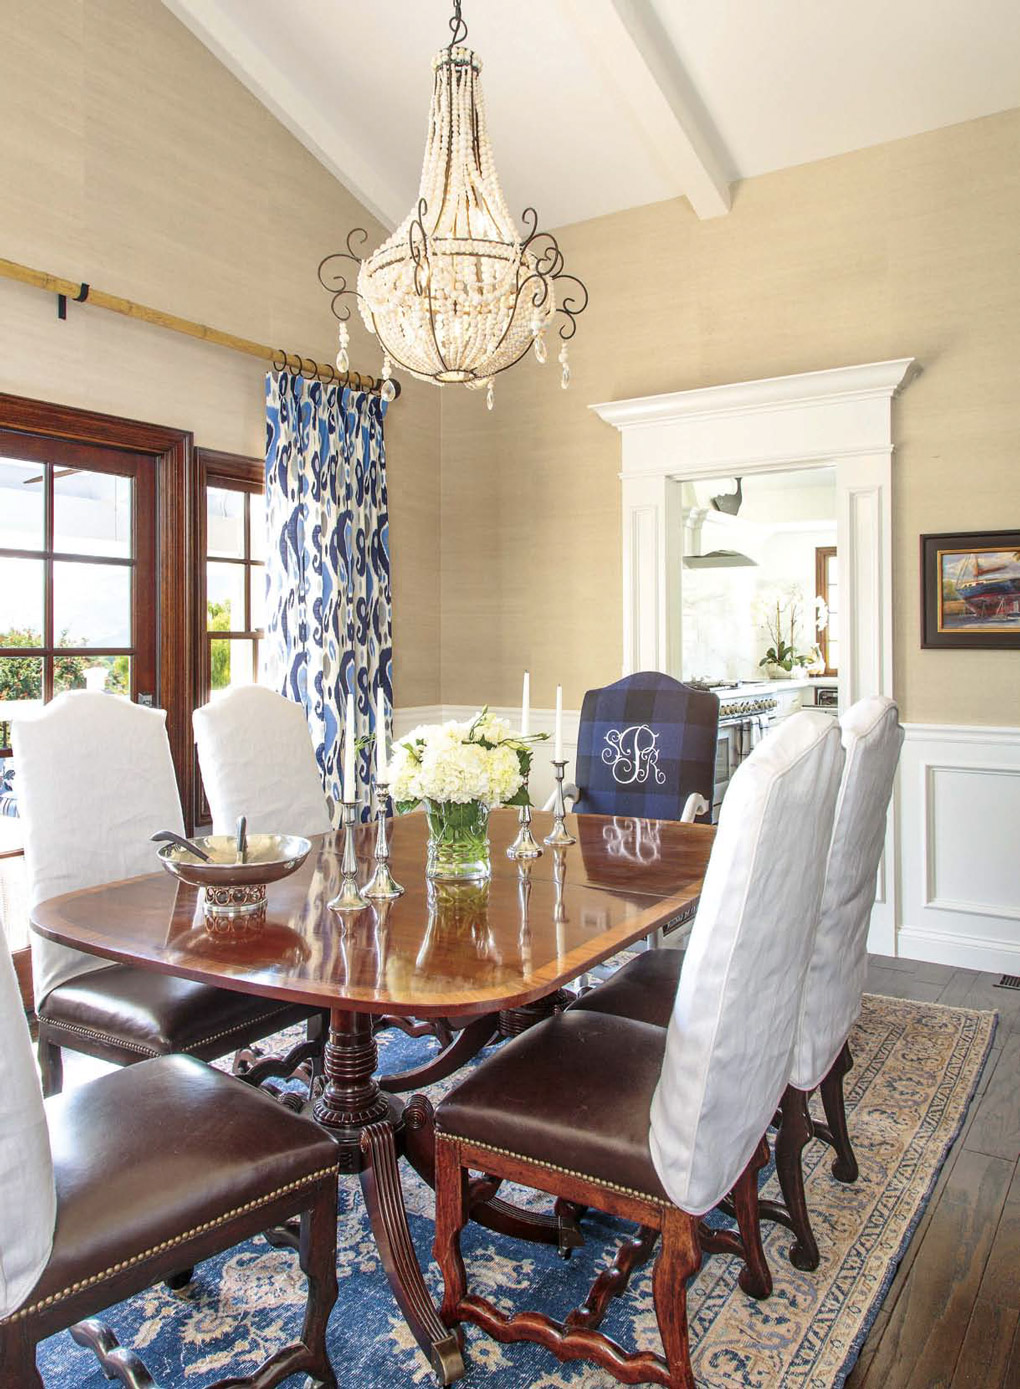 Regal British colonial formal dining space with a bright chandelier, double pedestal table and leather high-back chairs.